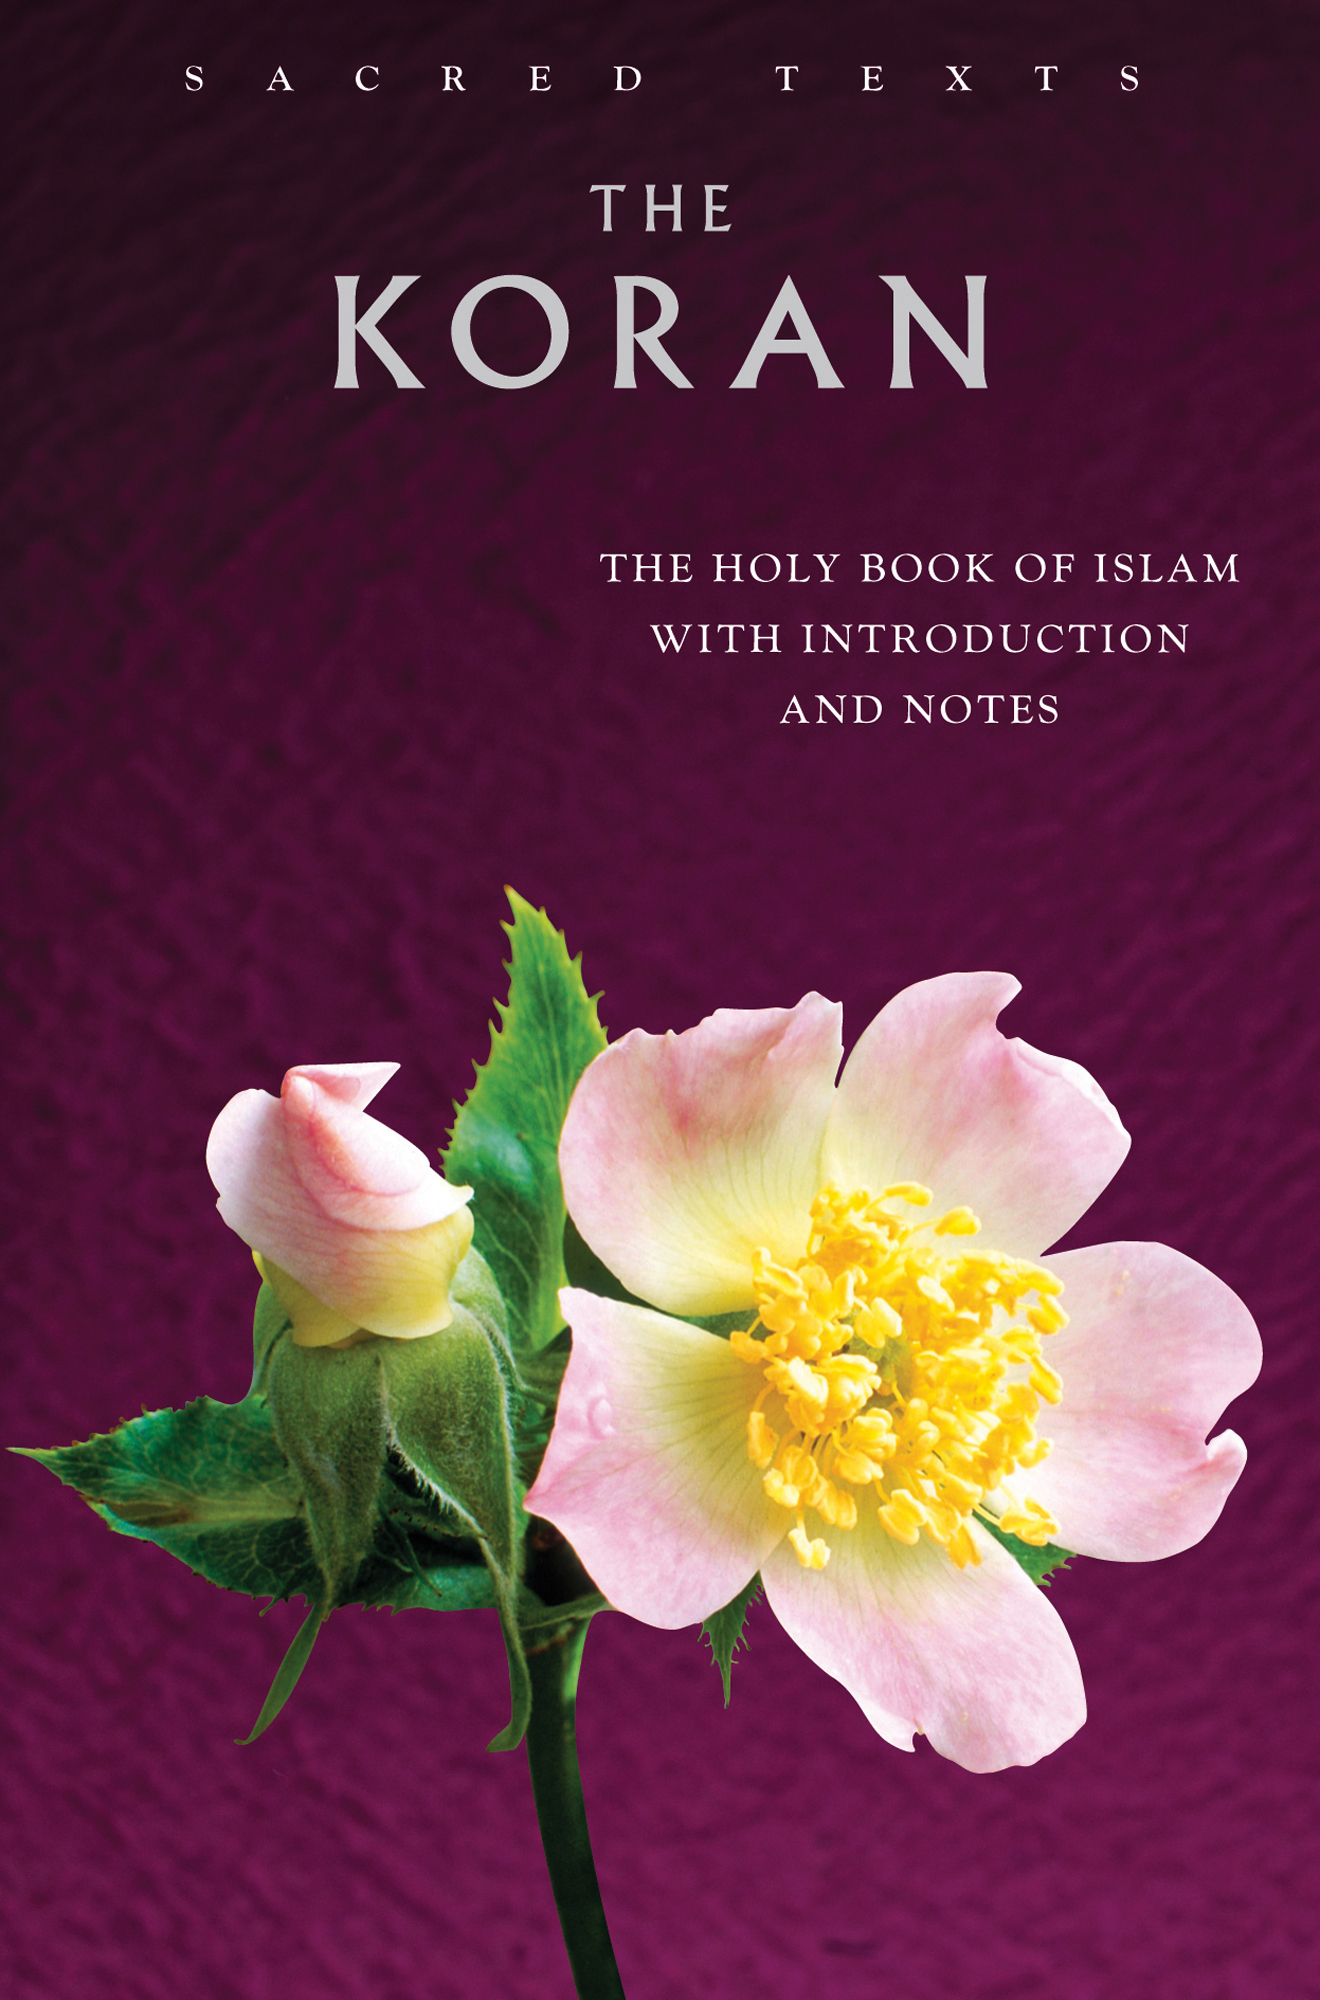 Sacred Texts: The Koran: The Holy Book of Islam with Introduction and Notes